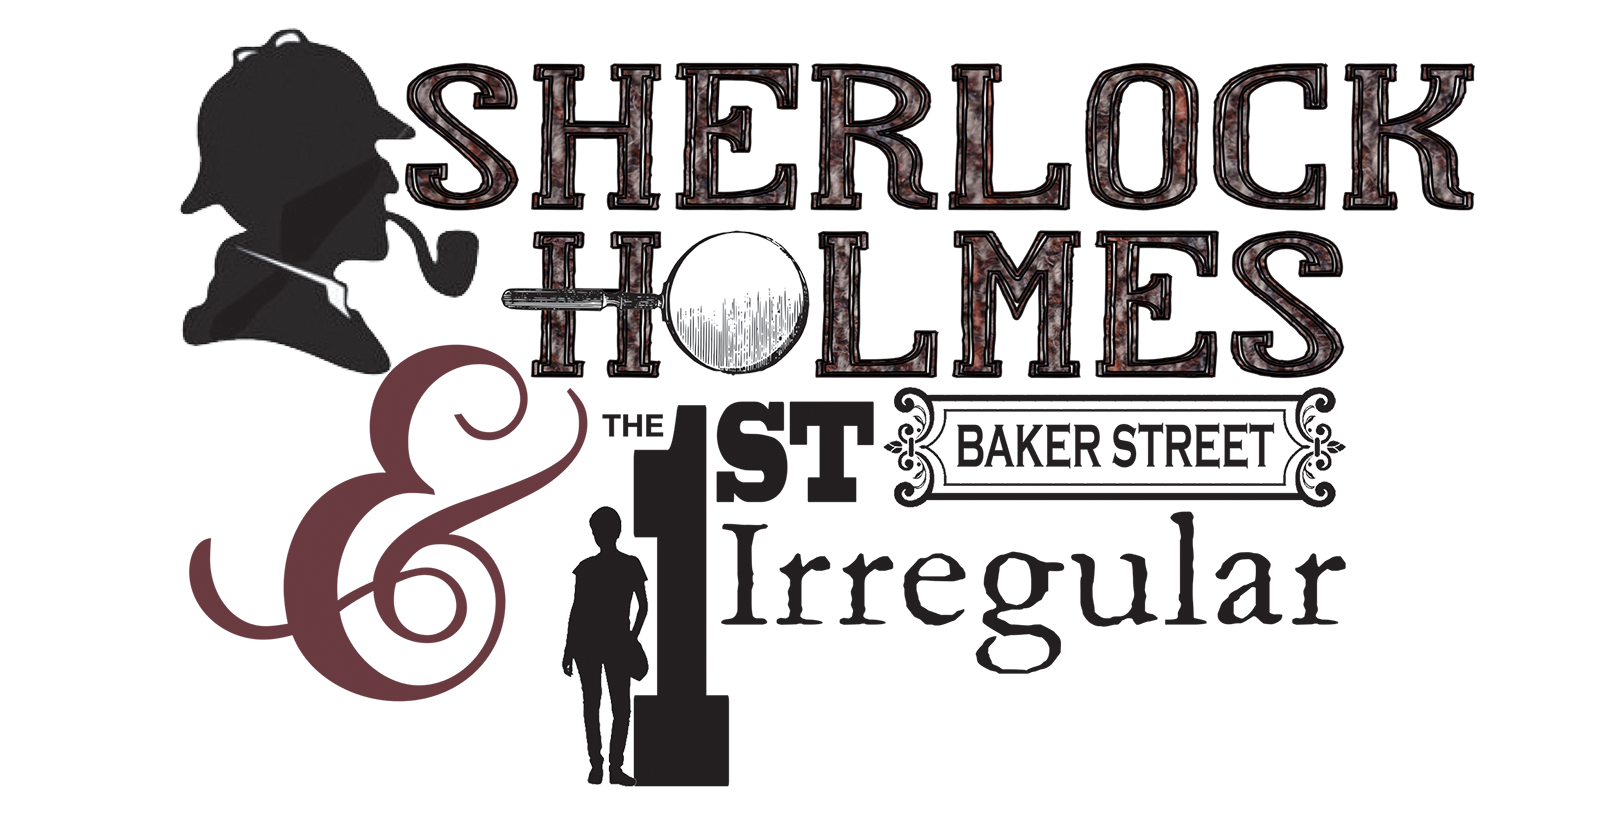 Detective clipart observant. Sherlock holmes the first